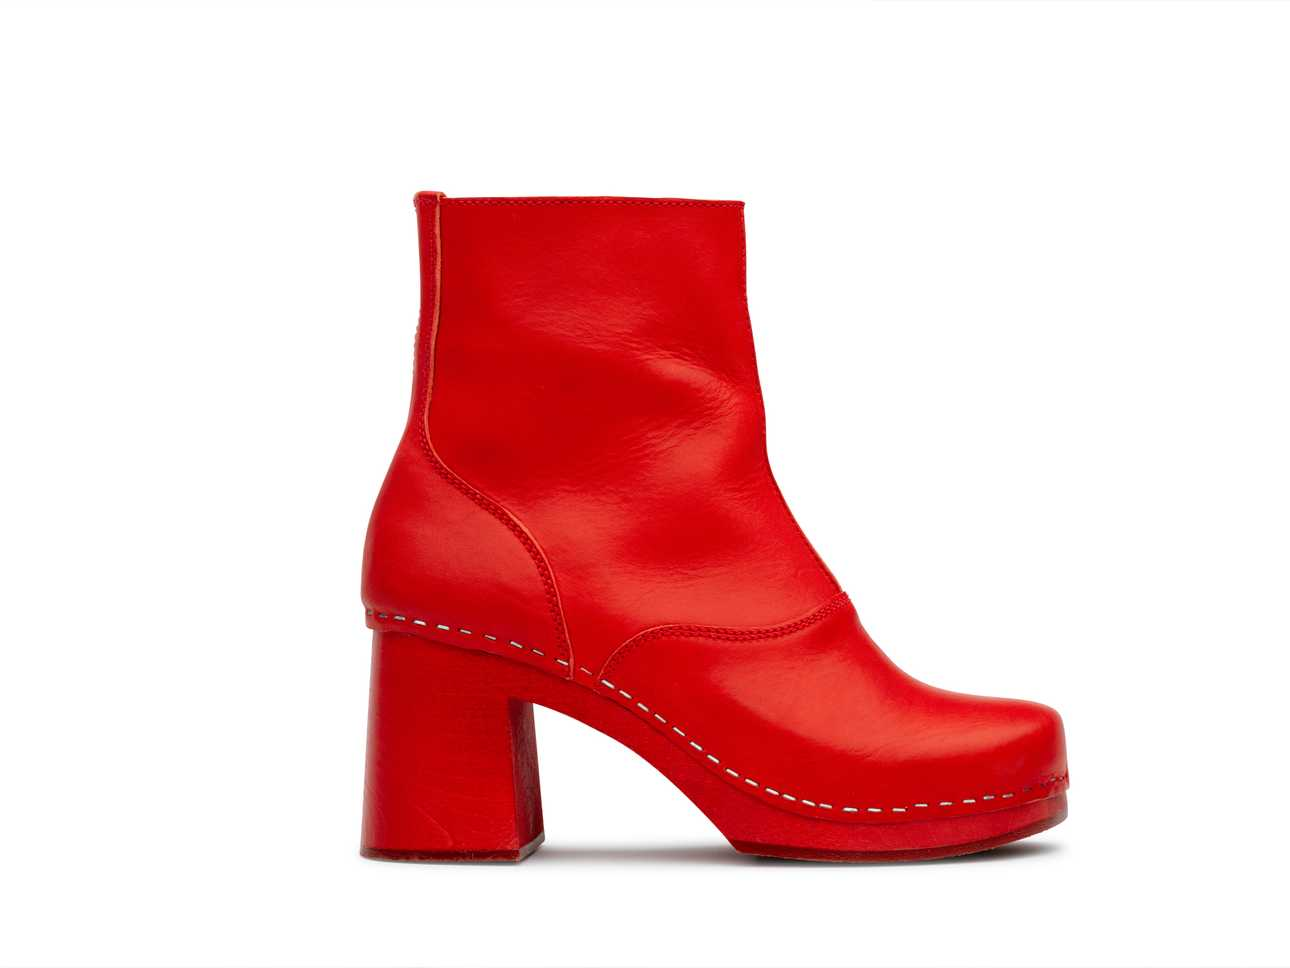 60s boot Red/red sole